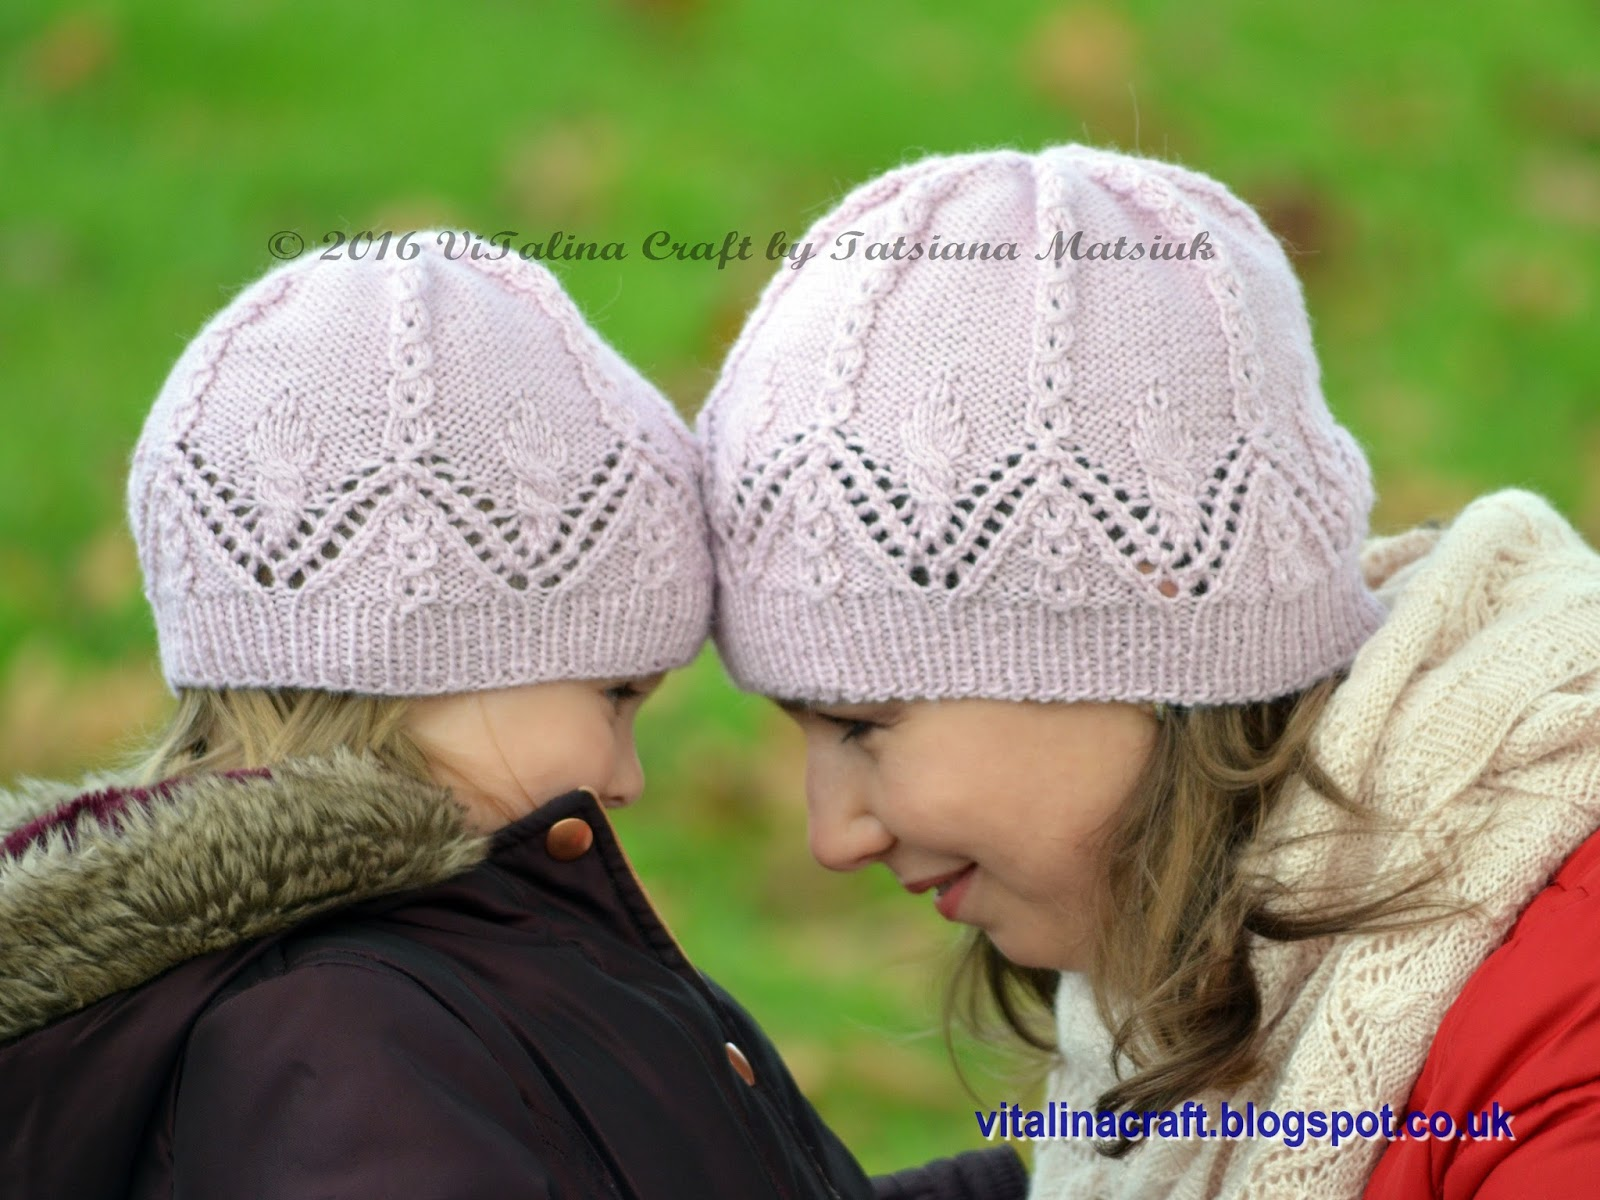 Knitting Pattern For Lace Baby Hat : Lace Charm Hat and Cowl Set ViTalina Craft